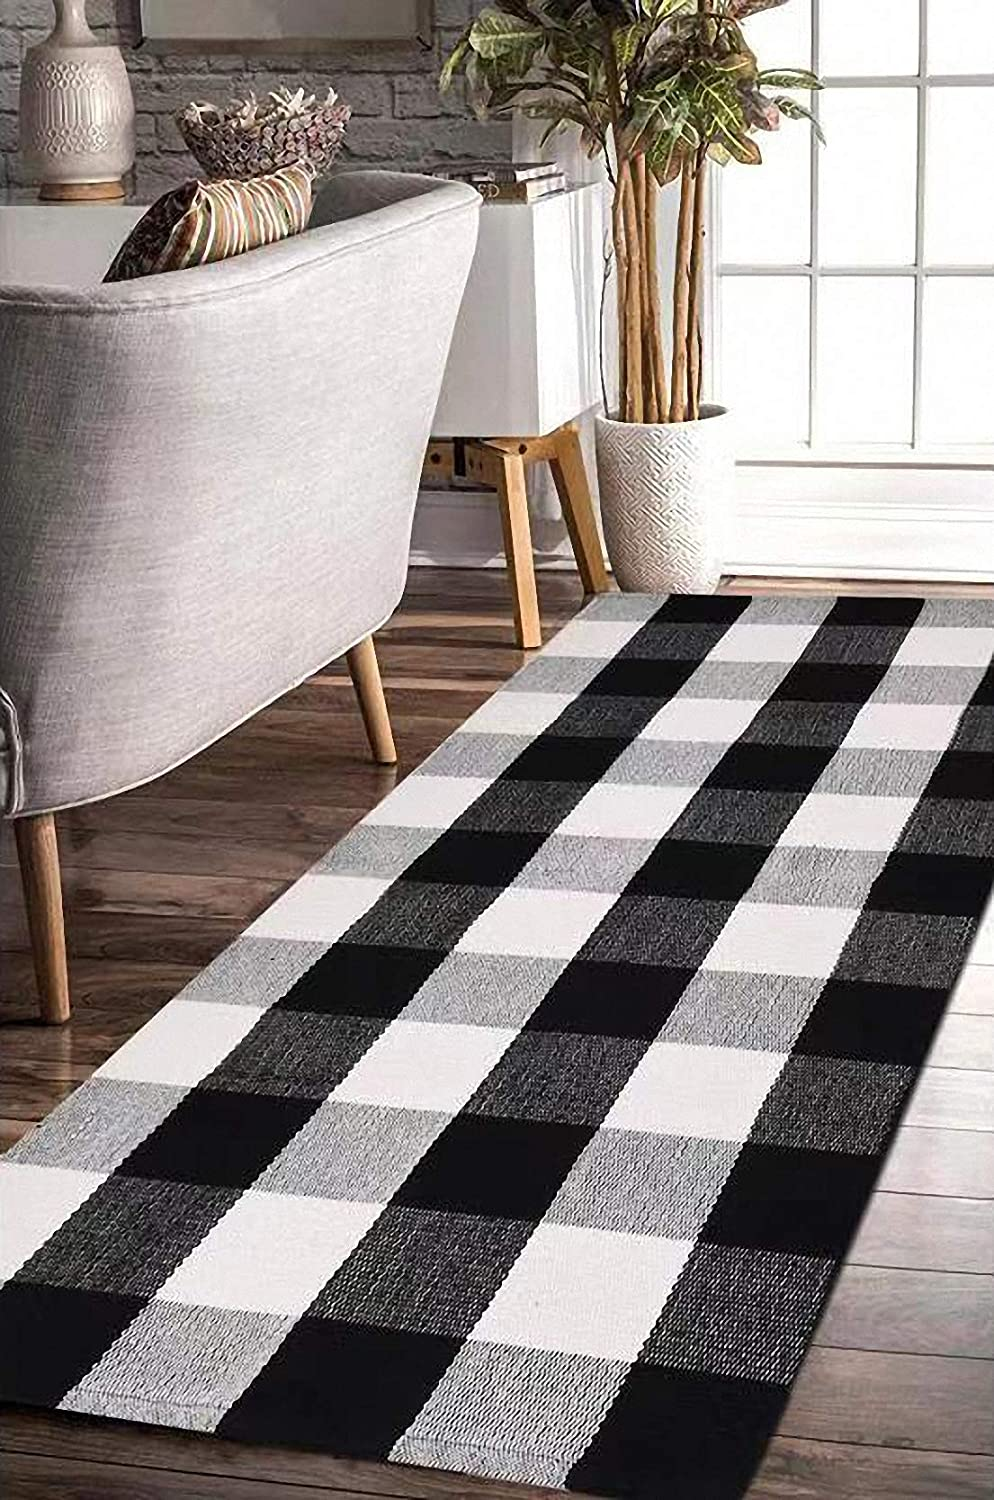 EARTHALL Cotton Buffalo Black and White Plaid Rugs, Hand-Woven Checkered Carpet, Washable Kitchen/Frontdoor/Living Room/Laundry Room/Bathroom/Bedroom Mat (23.6''x70.8'')